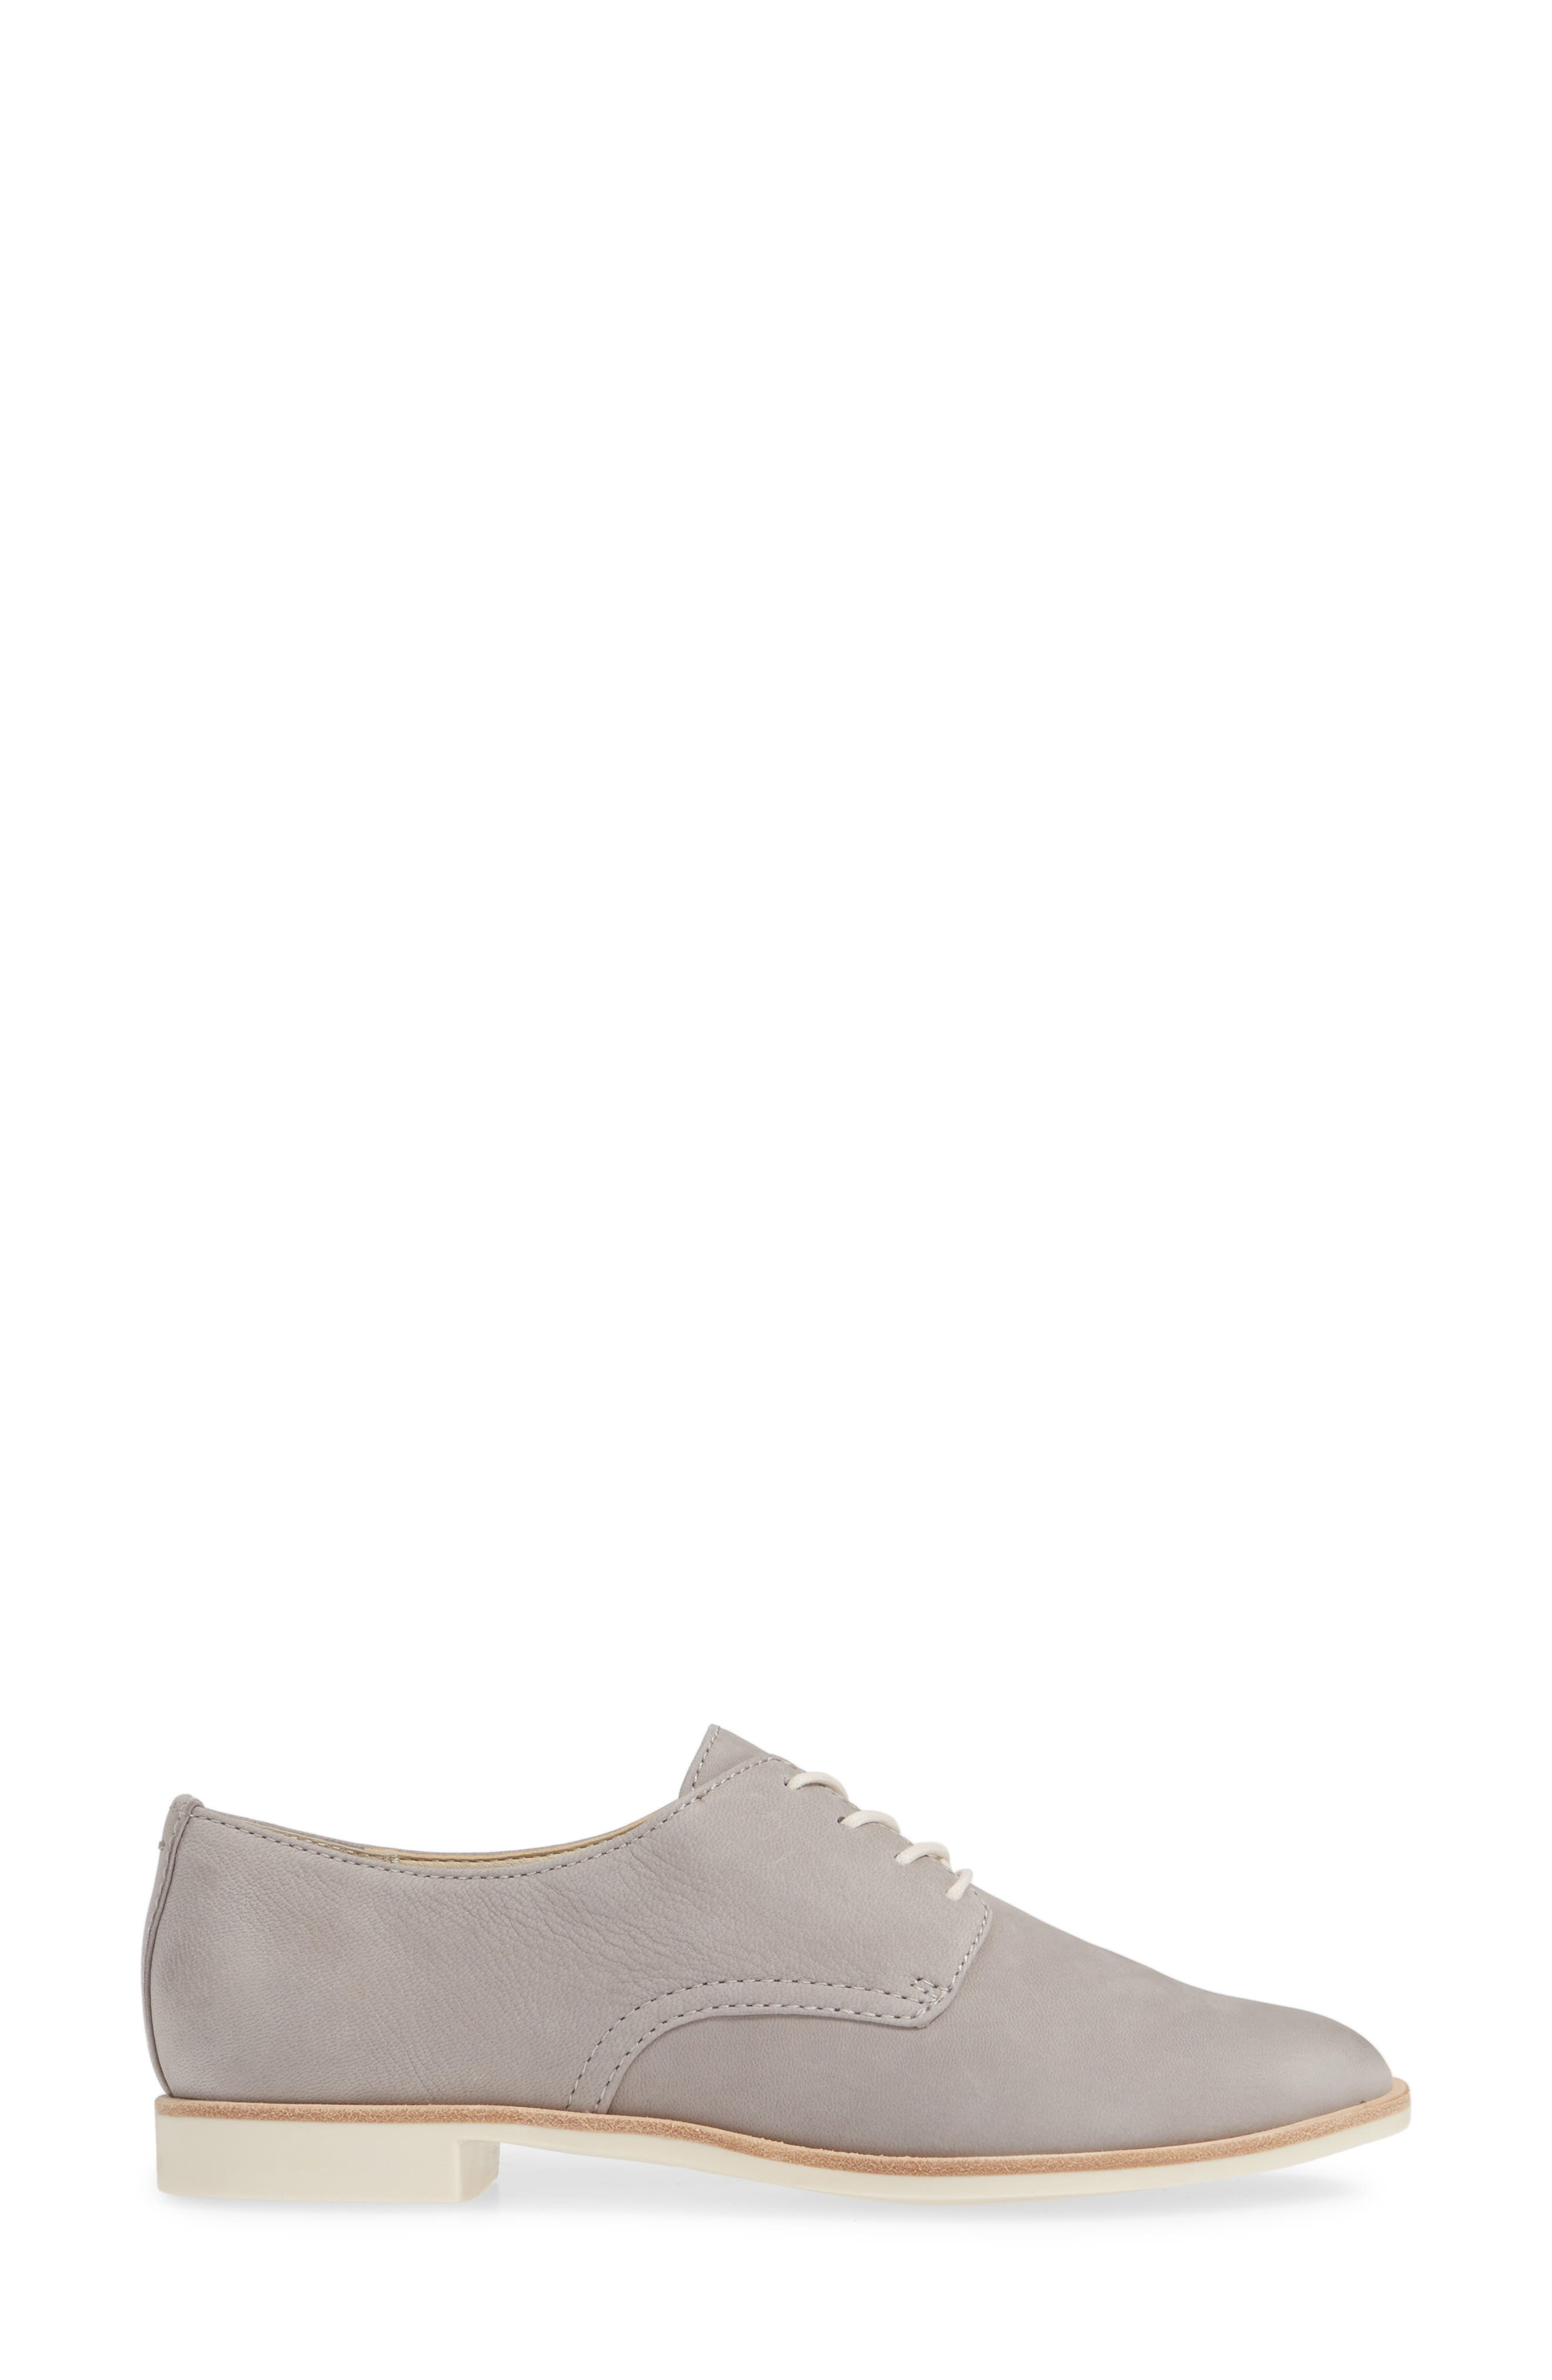 DOLCE VITA, Kyle Derby, Alternate thumbnail 3, color, GREY LEATHER